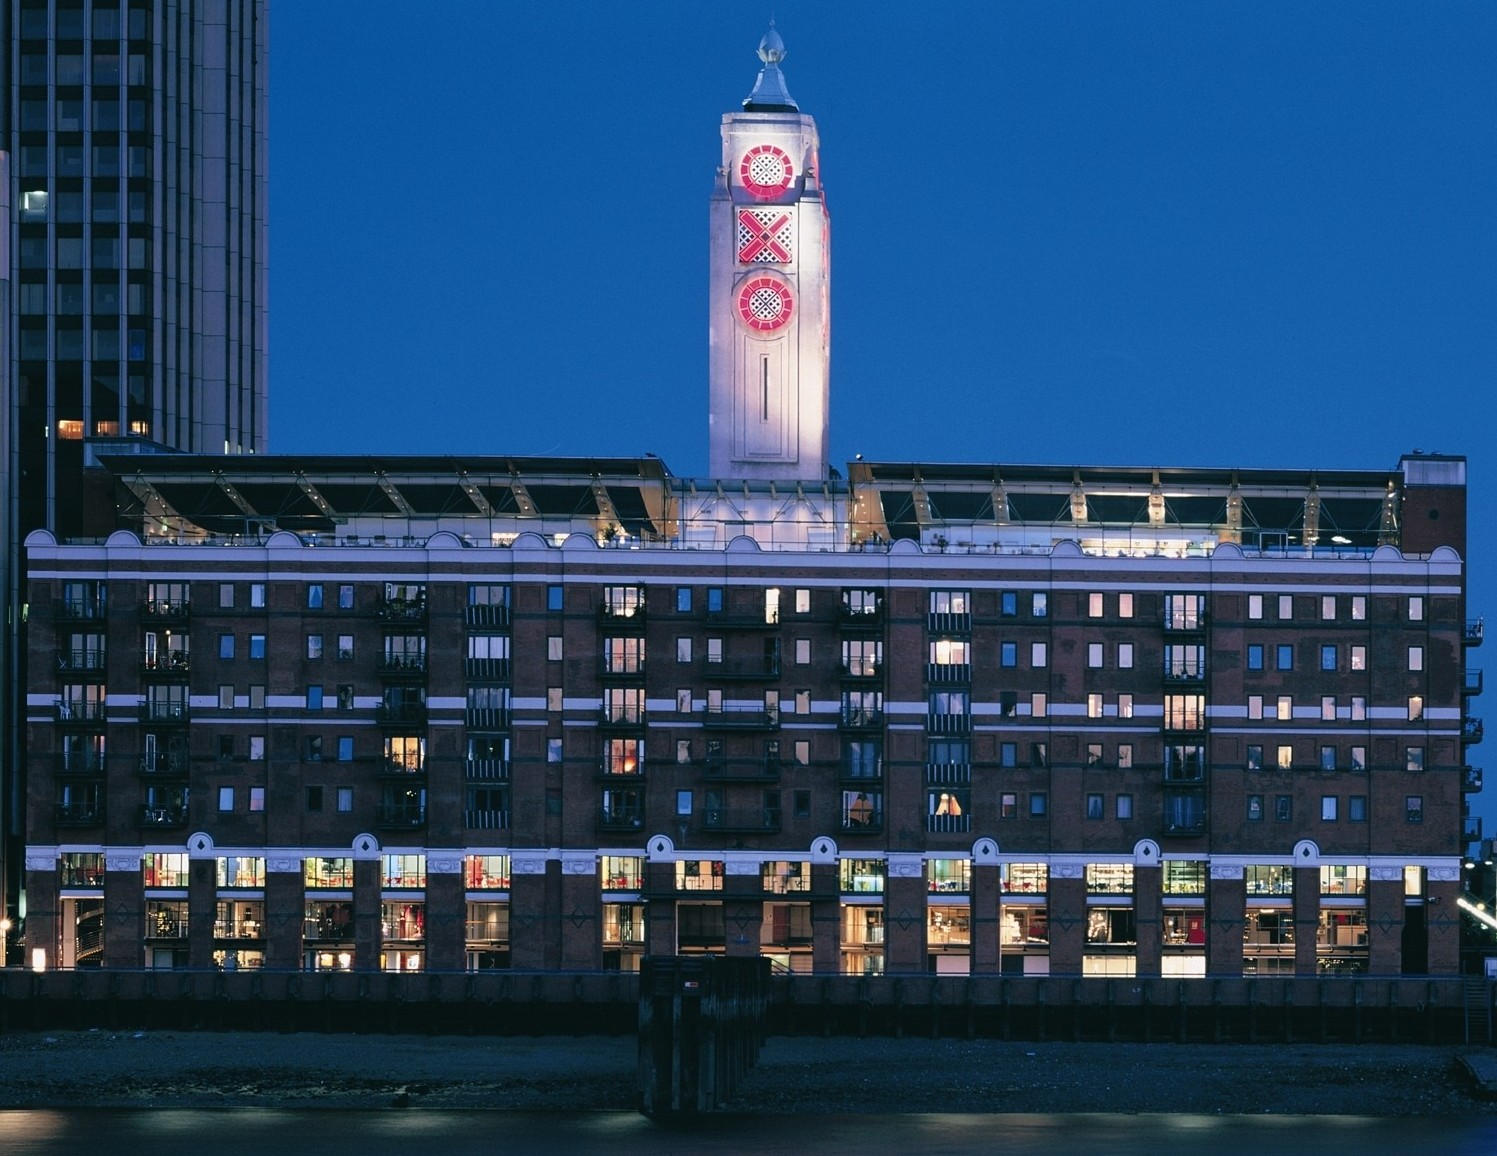 Oxo Building at Night crop